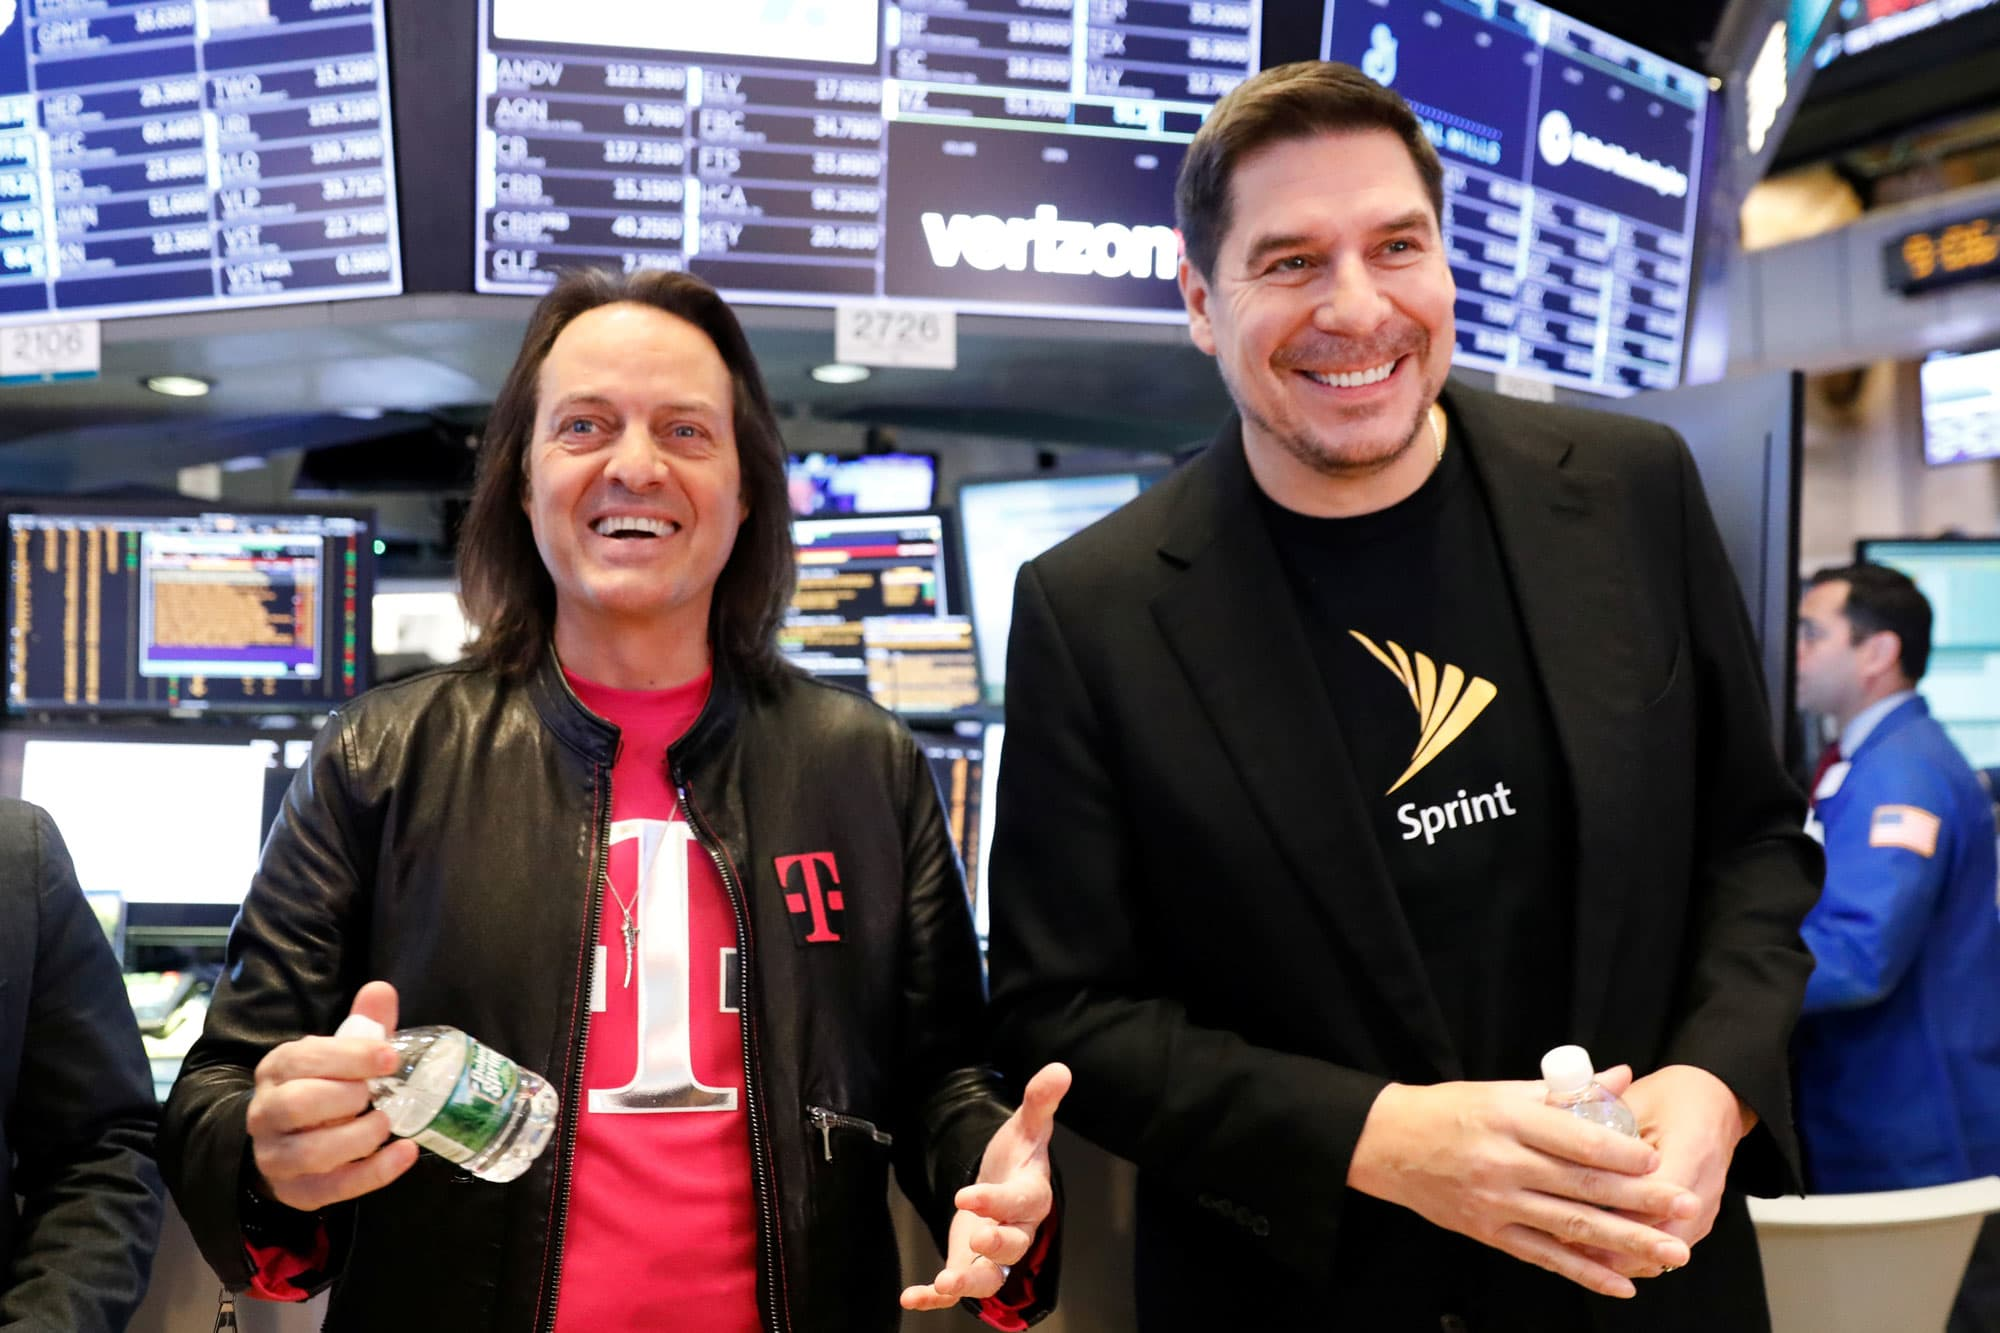 DOJ announces agreement on $26 billion merger between T-Mobile and Sprint